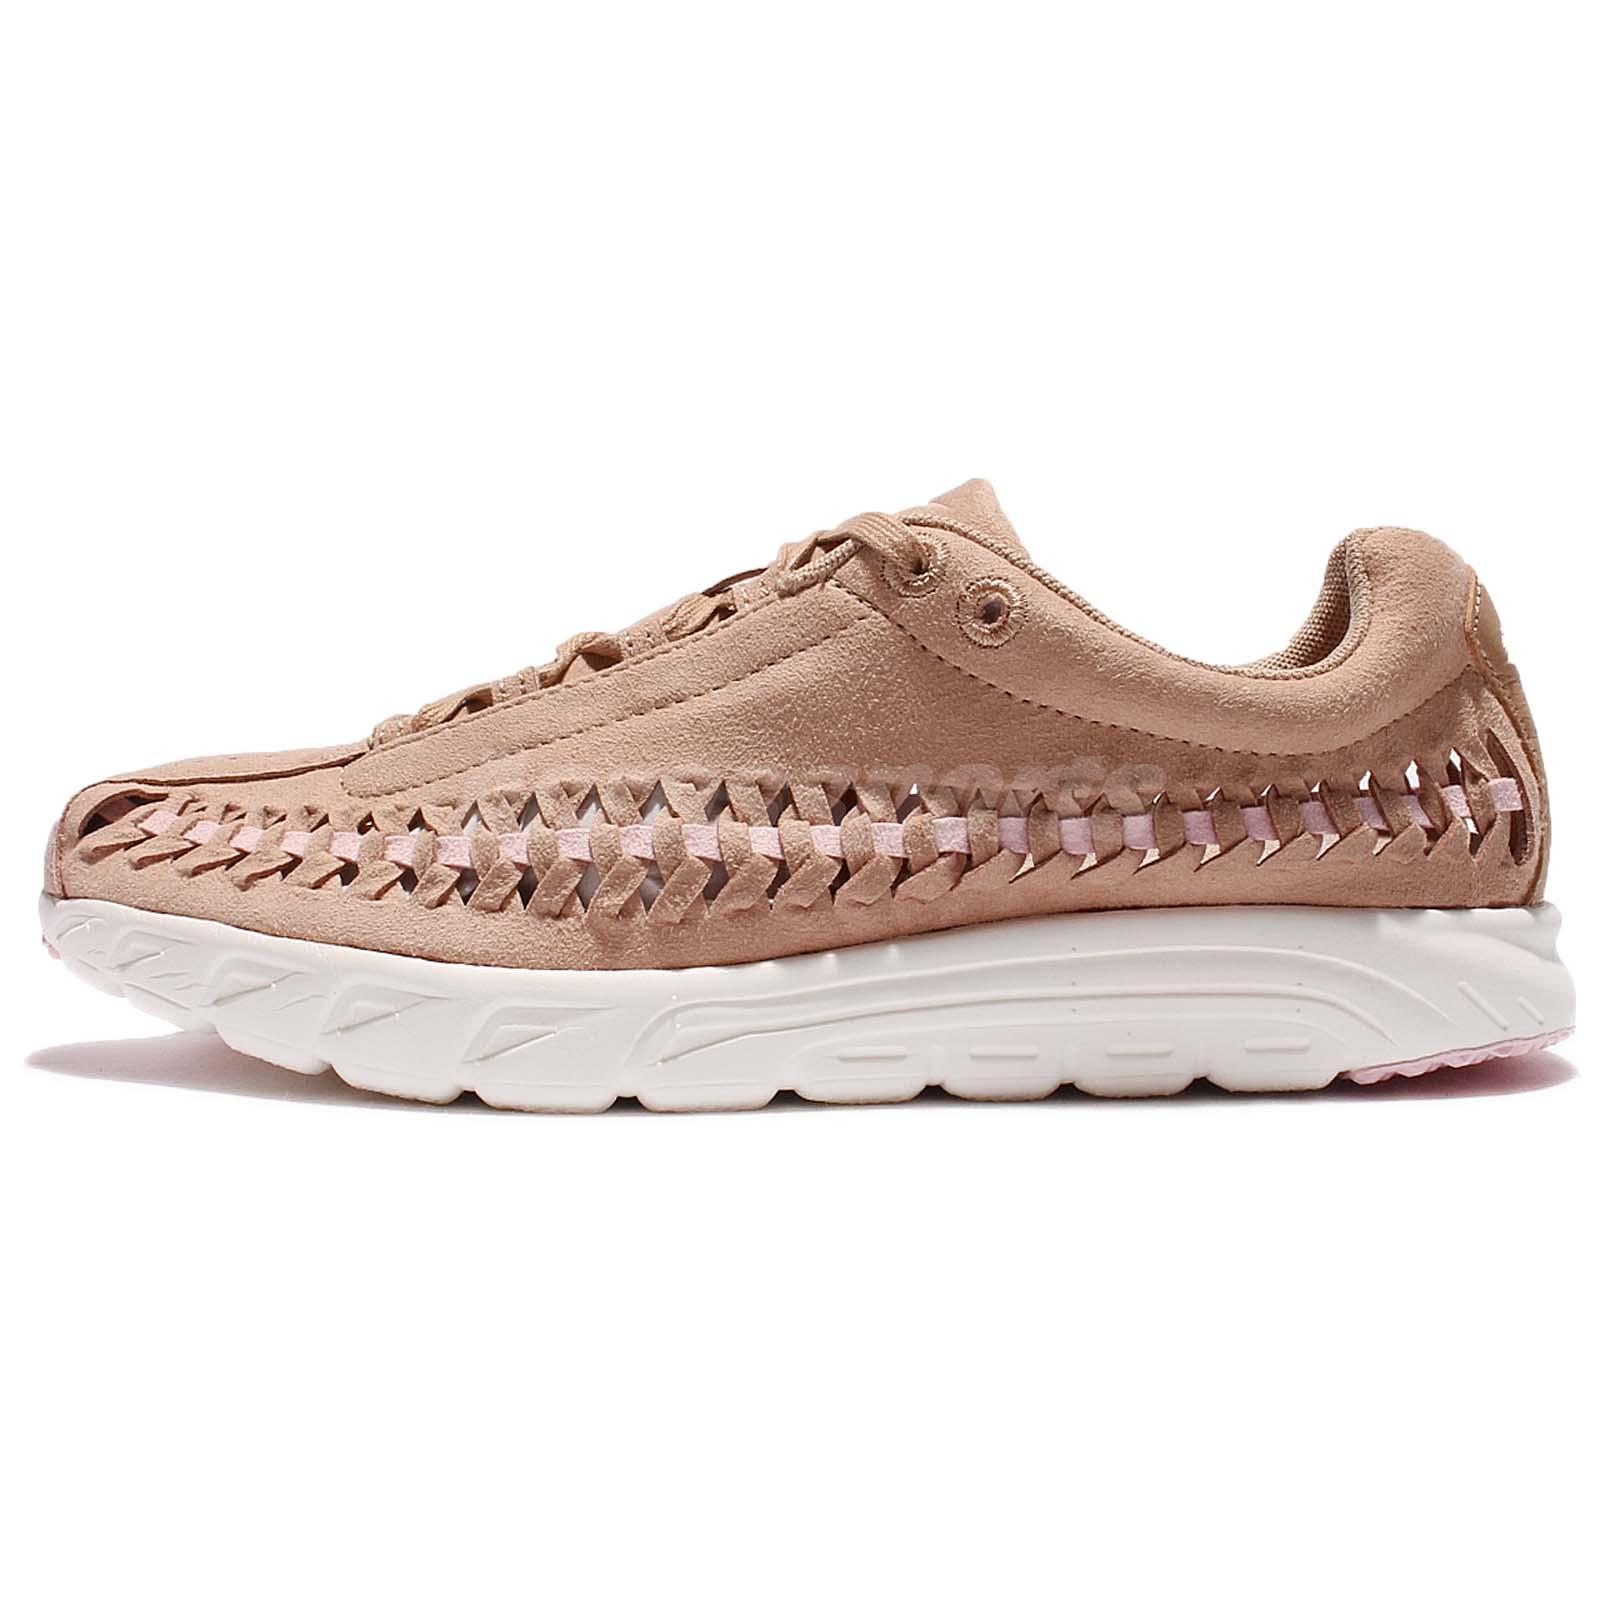 e1c5145bc18026 Buy nike woven shoes womens - 54% OFF